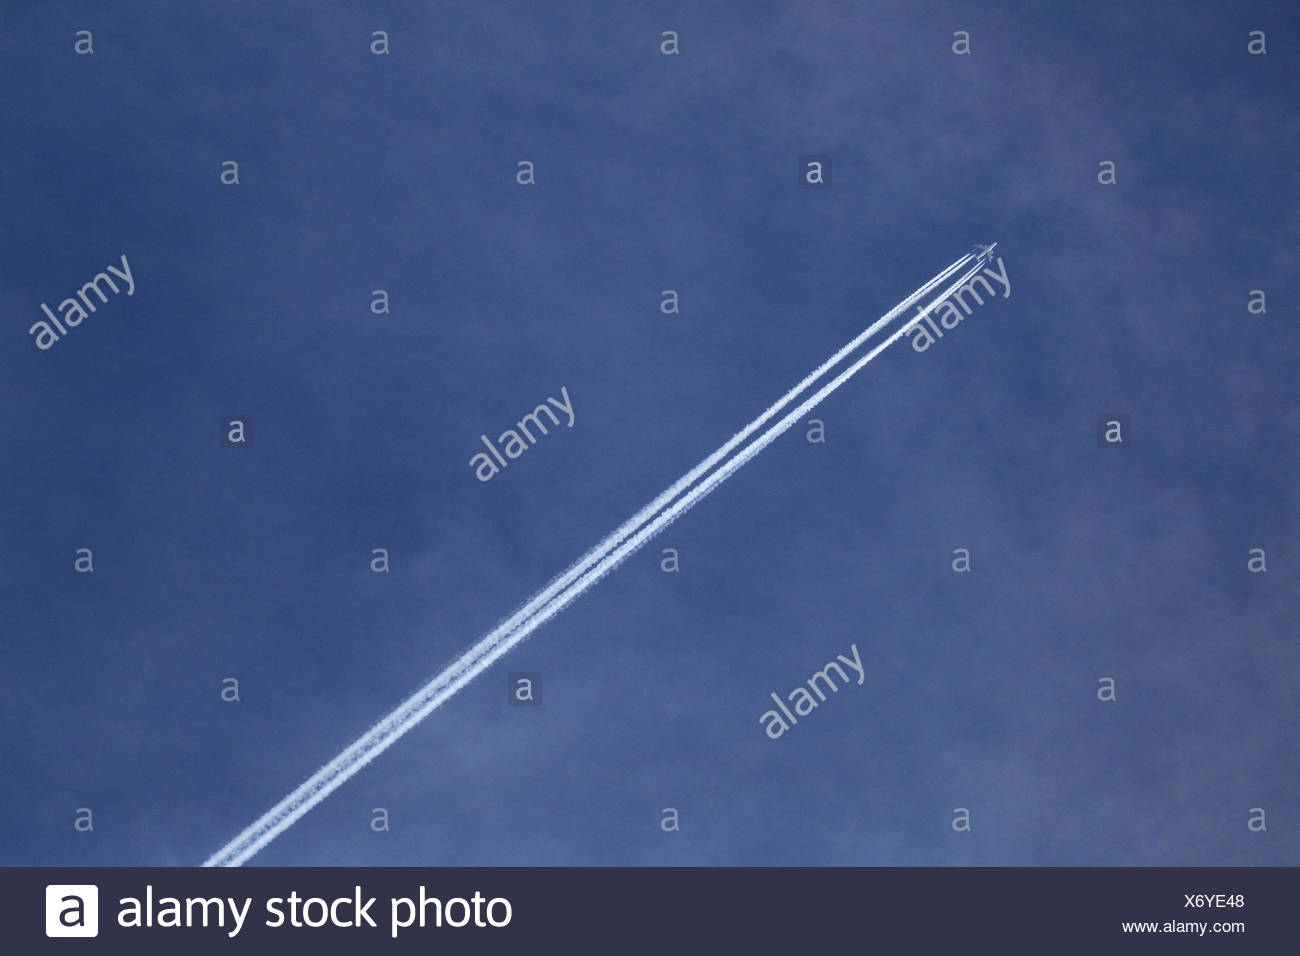 Jet plane with condensation trails - Stock Image